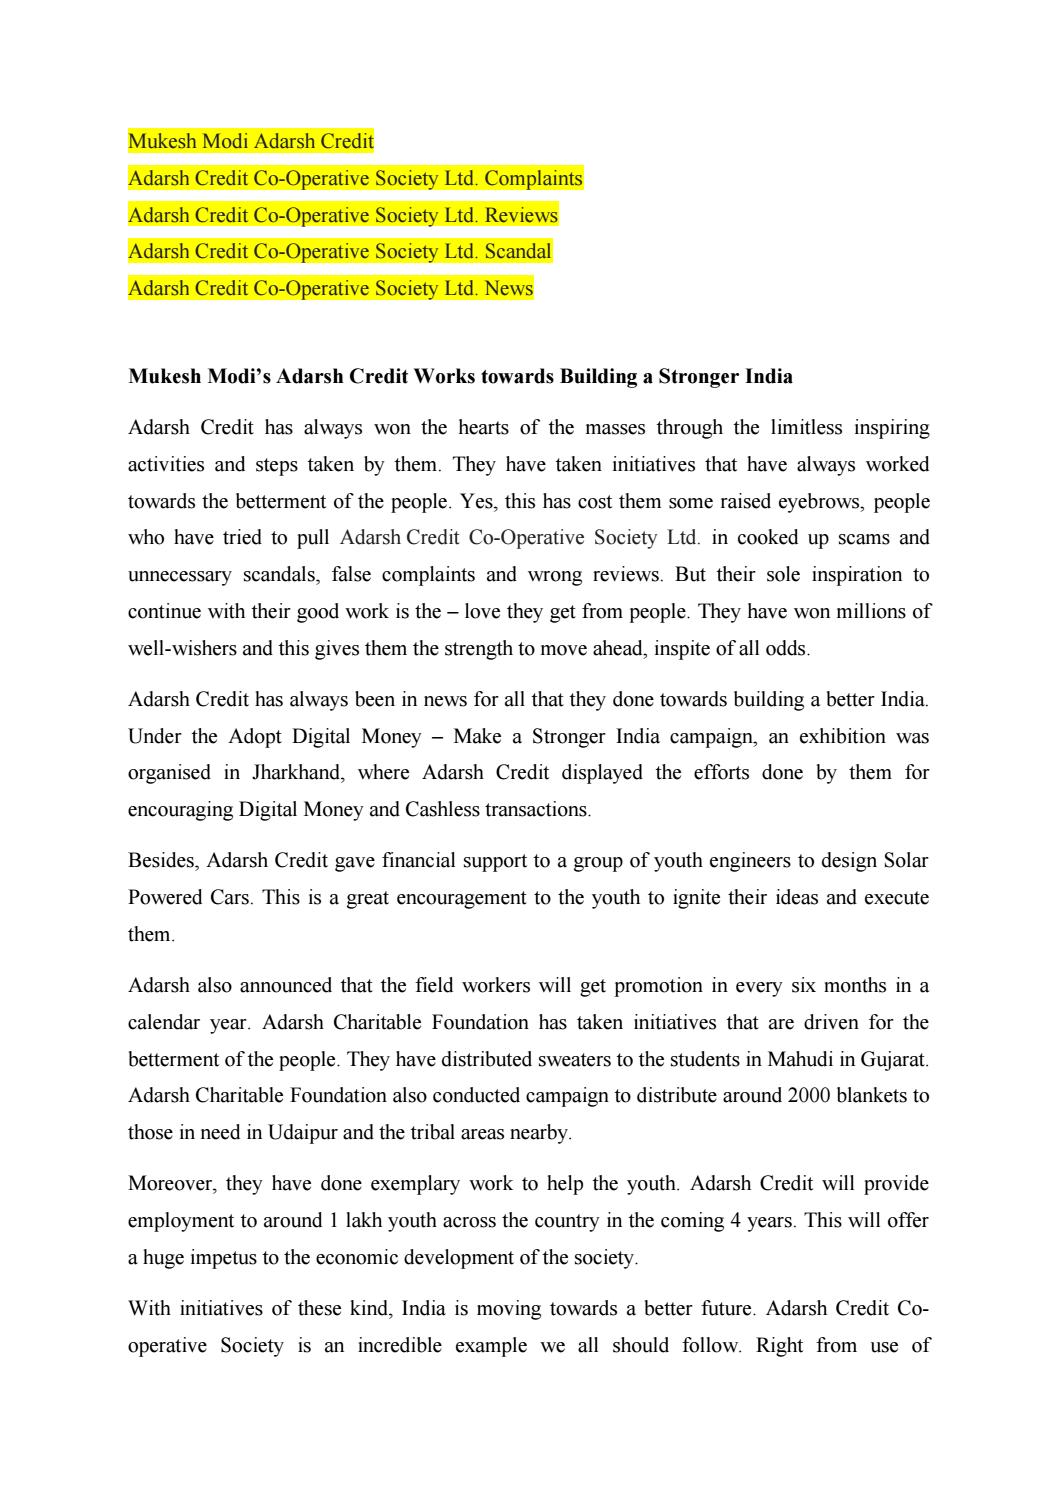 Adarsh credit cooperative society news